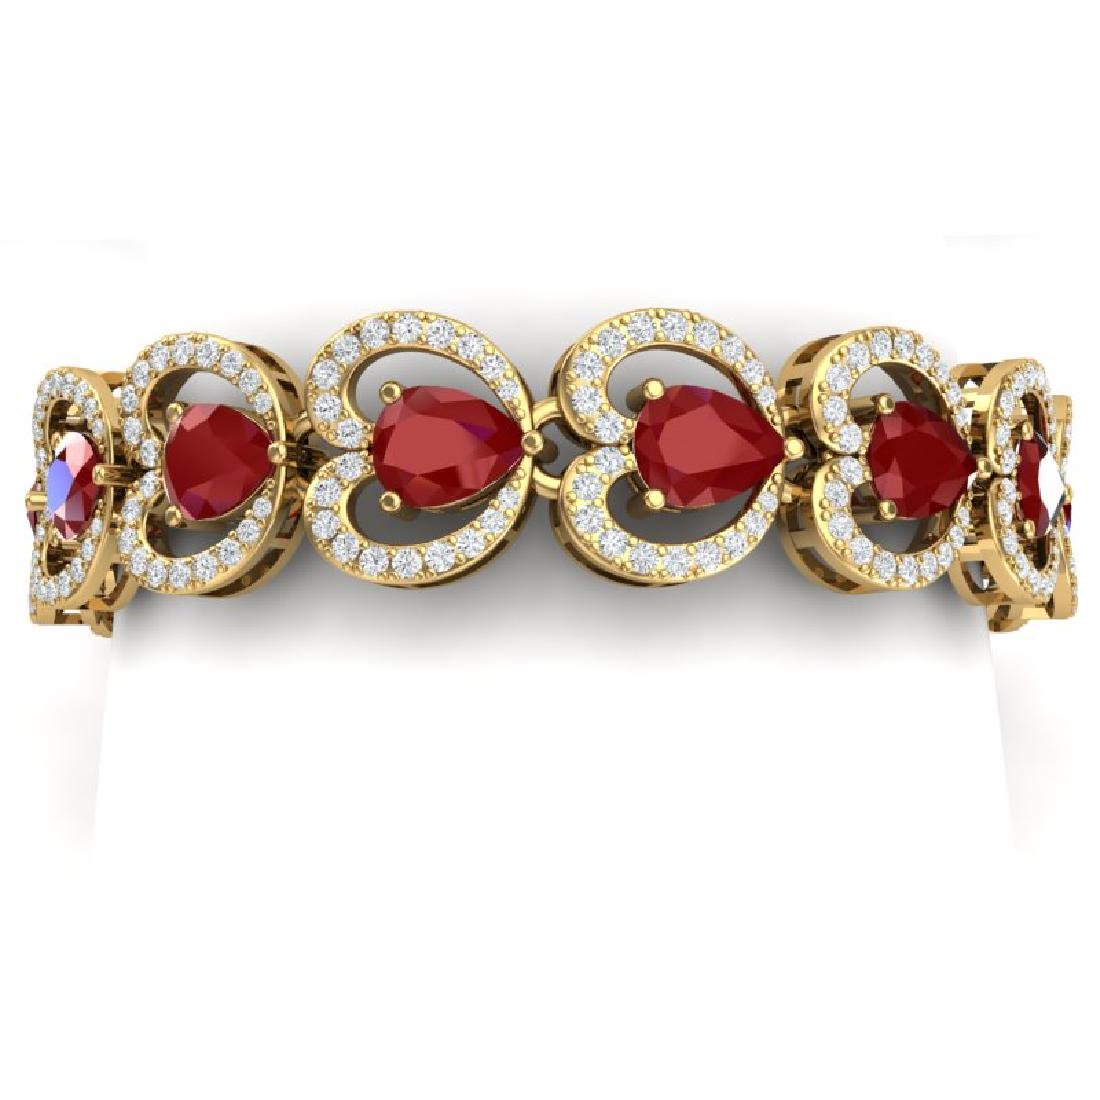 32.15 CTW Royalty Ruby & VS Diamond Bracelet 18K Yellow